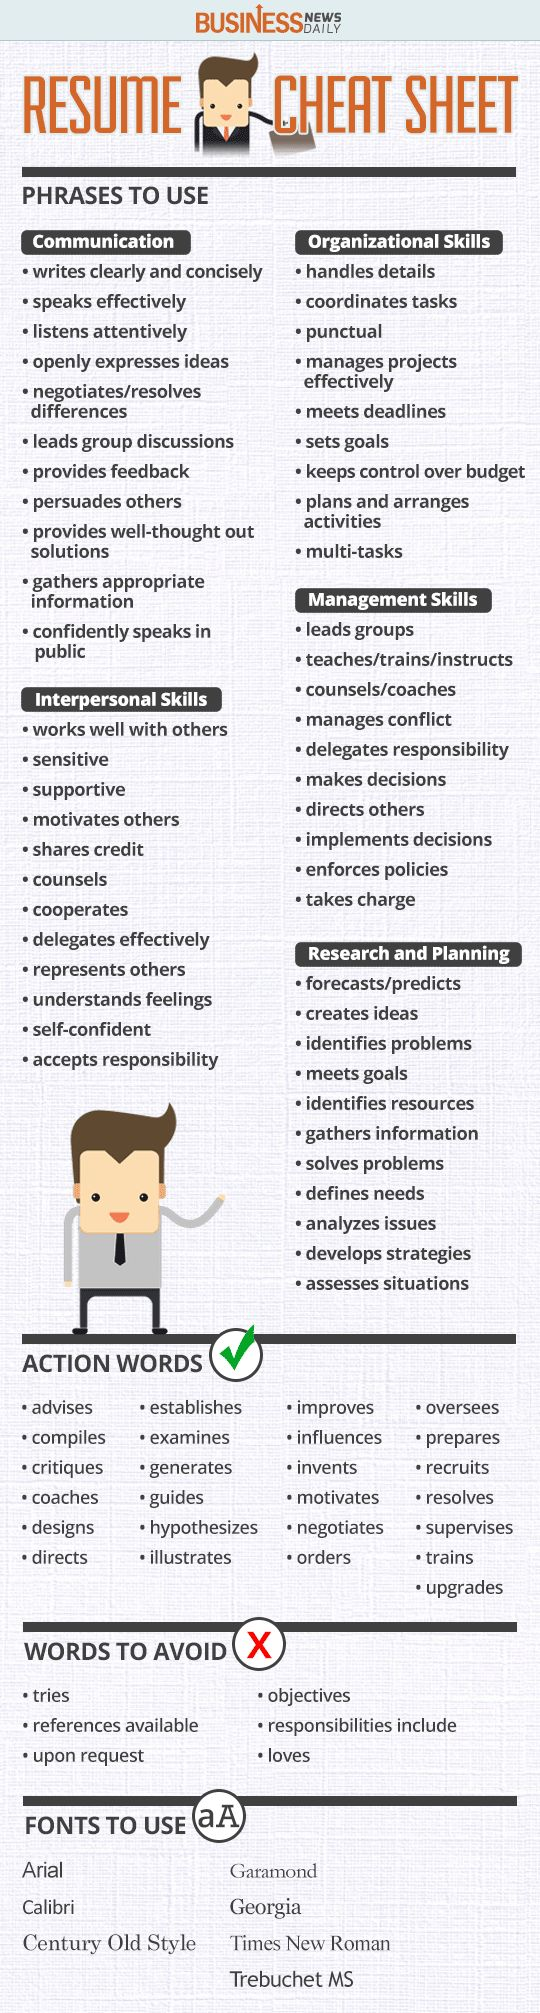 Opposenewapstandardsus  Outstanding  Ideas About Resume On Pinterest  Cv Format Resume Cv And  With Glamorous Resume Cheat Sheet Infographic Andrews Almost Done With A Complete Unit On Employment Which With Awesome Resume Waitress Also Chef Resumes In Addition Dance Resume Examples And Restaurant Resumes As Well As Music Resume Template Additionally Resume Work Experience Examples From Pinterestcom With Opposenewapstandardsus  Glamorous  Ideas About Resume On Pinterest  Cv Format Resume Cv And  With Awesome Resume Cheat Sheet Infographic Andrews Almost Done With A Complete Unit On Employment Which And Outstanding Resume Waitress Also Chef Resumes In Addition Dance Resume Examples From Pinterestcom